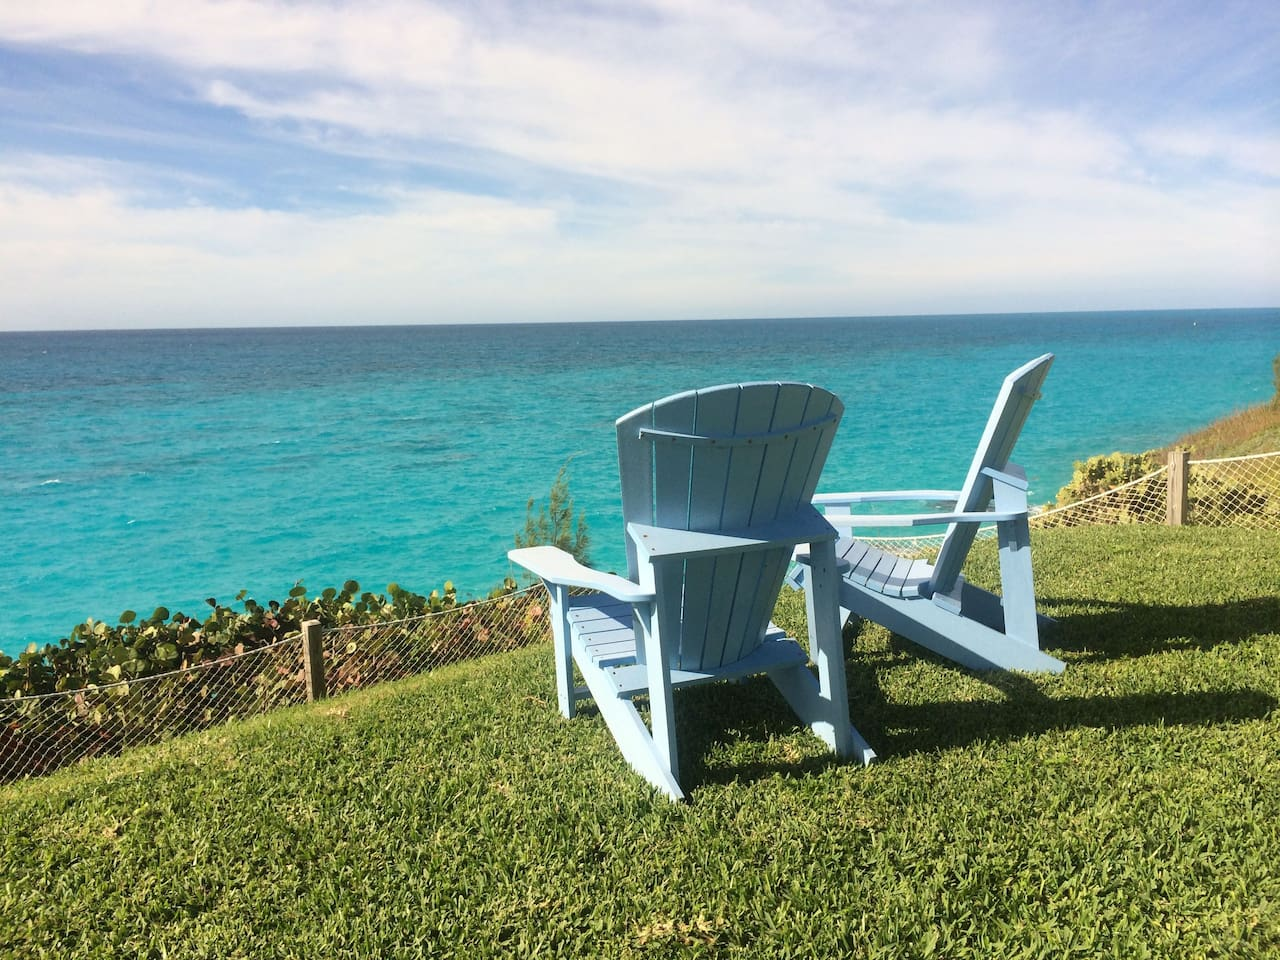 Relax and watch the Bermuda longtails, count the fishing fleet in and out or spot fish darting between the reefs.